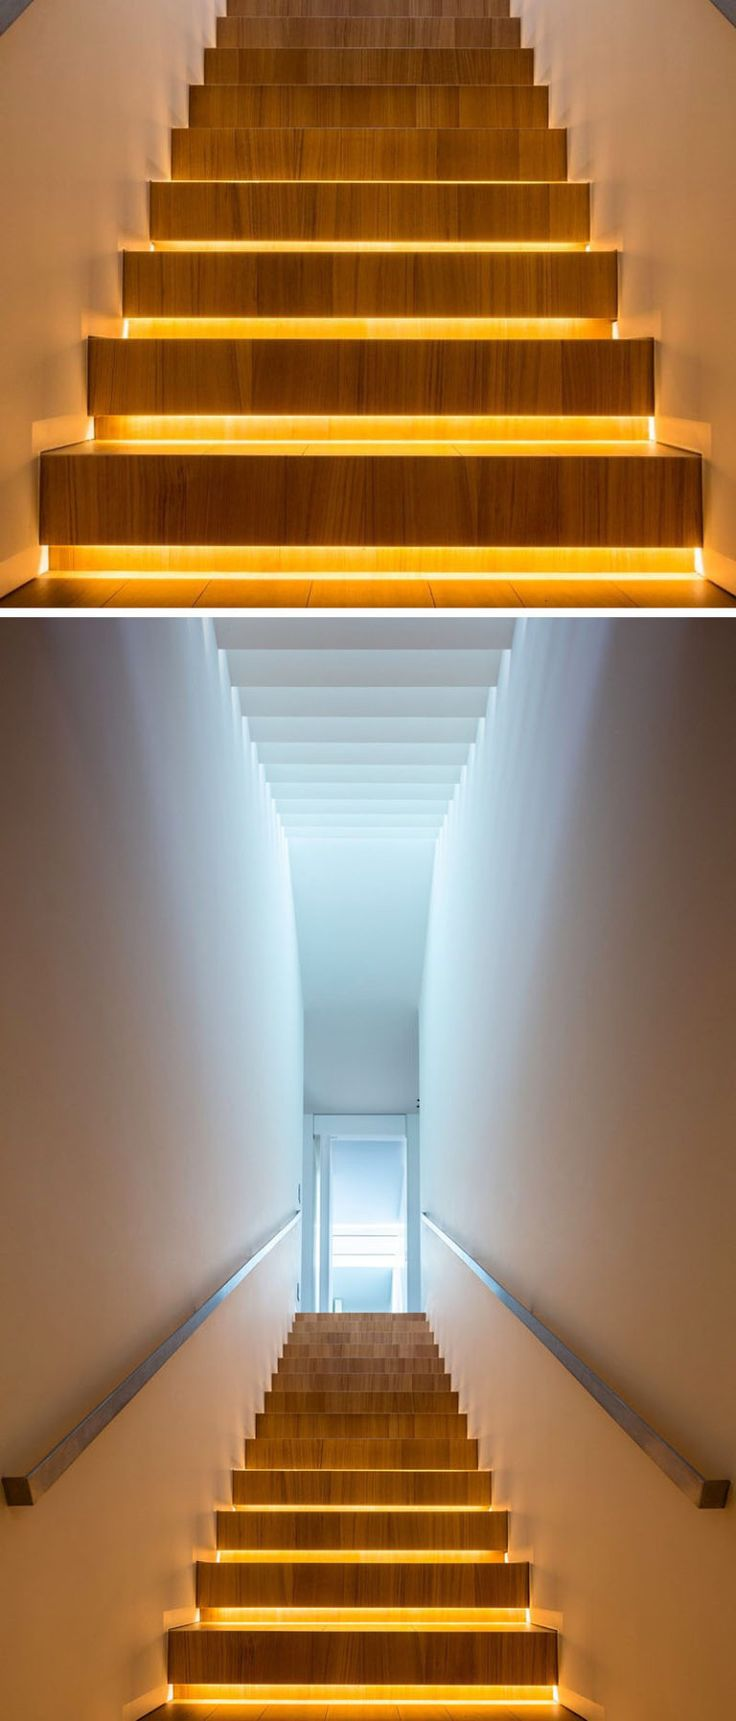 18 Examples Of Stair Details To Inspire You // These wooden stairs with hidden lighting, light up from underneath to ensure you'll never miss a step again.